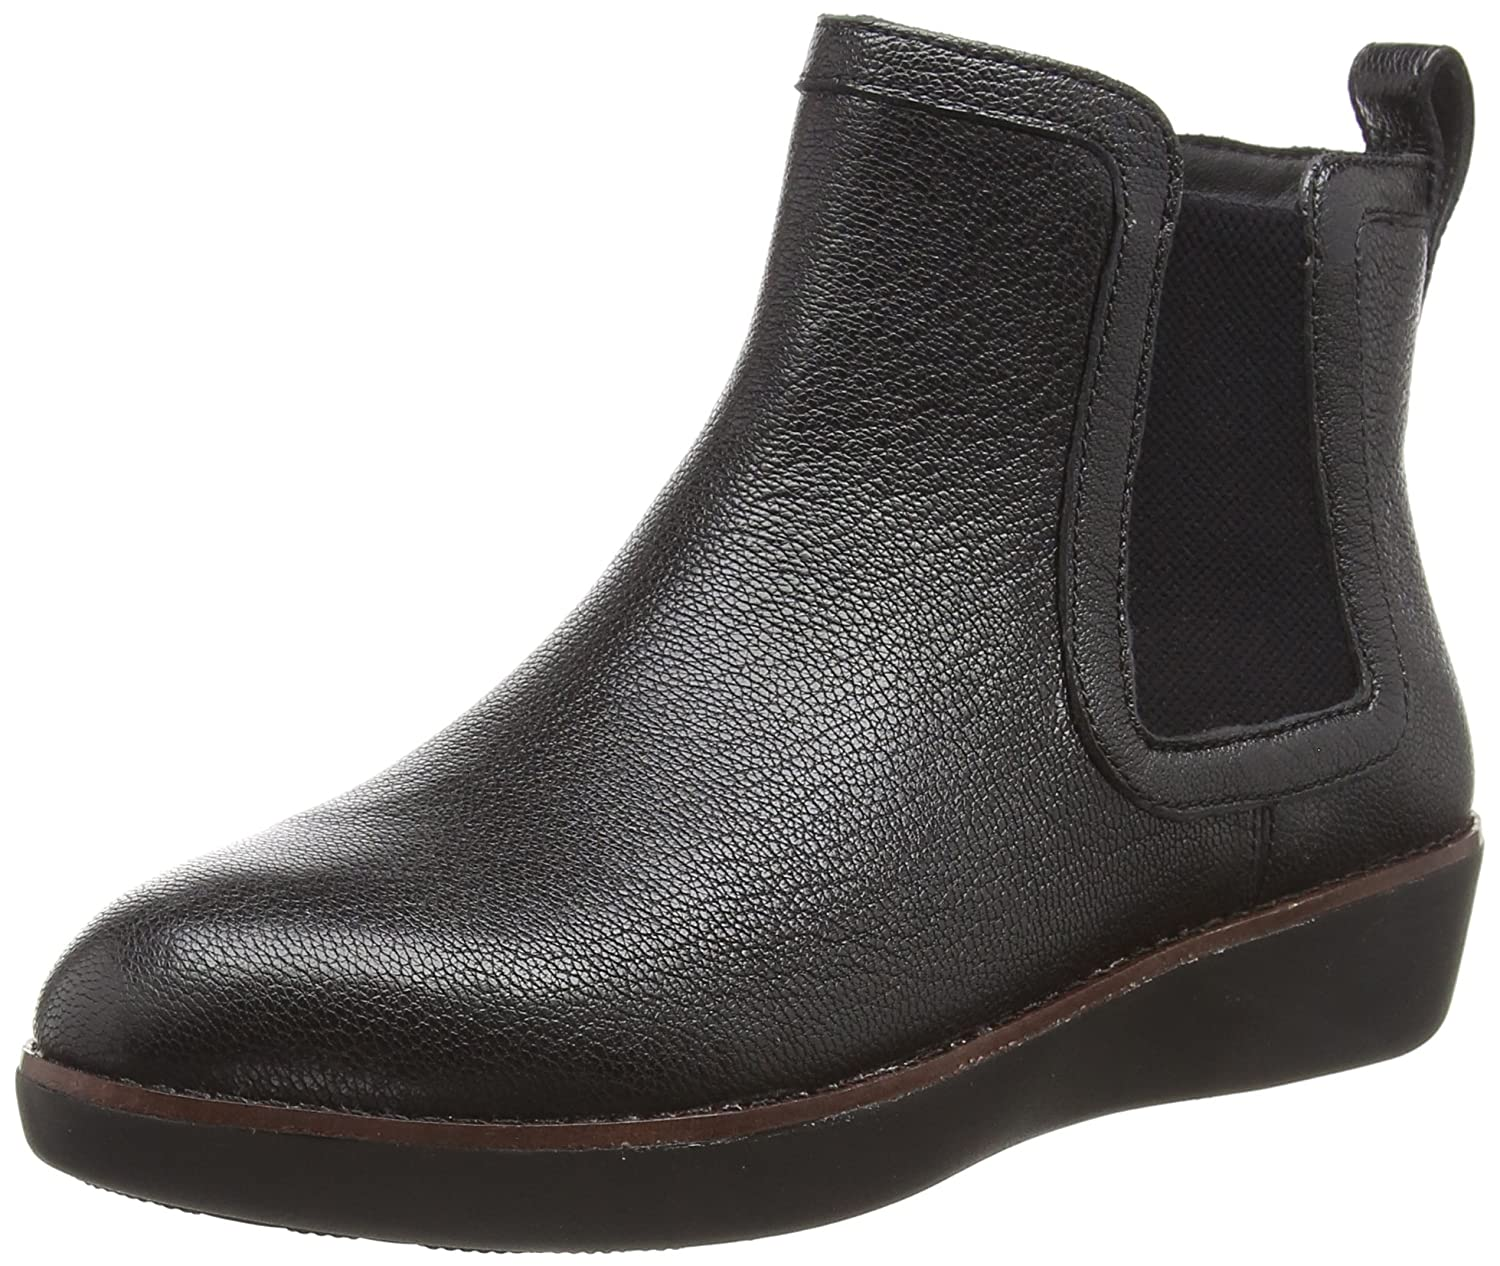 FitFlop Trade; Chai™ Leather Chelsea Boots B0792FHLQ4 8 B(M) US|Black